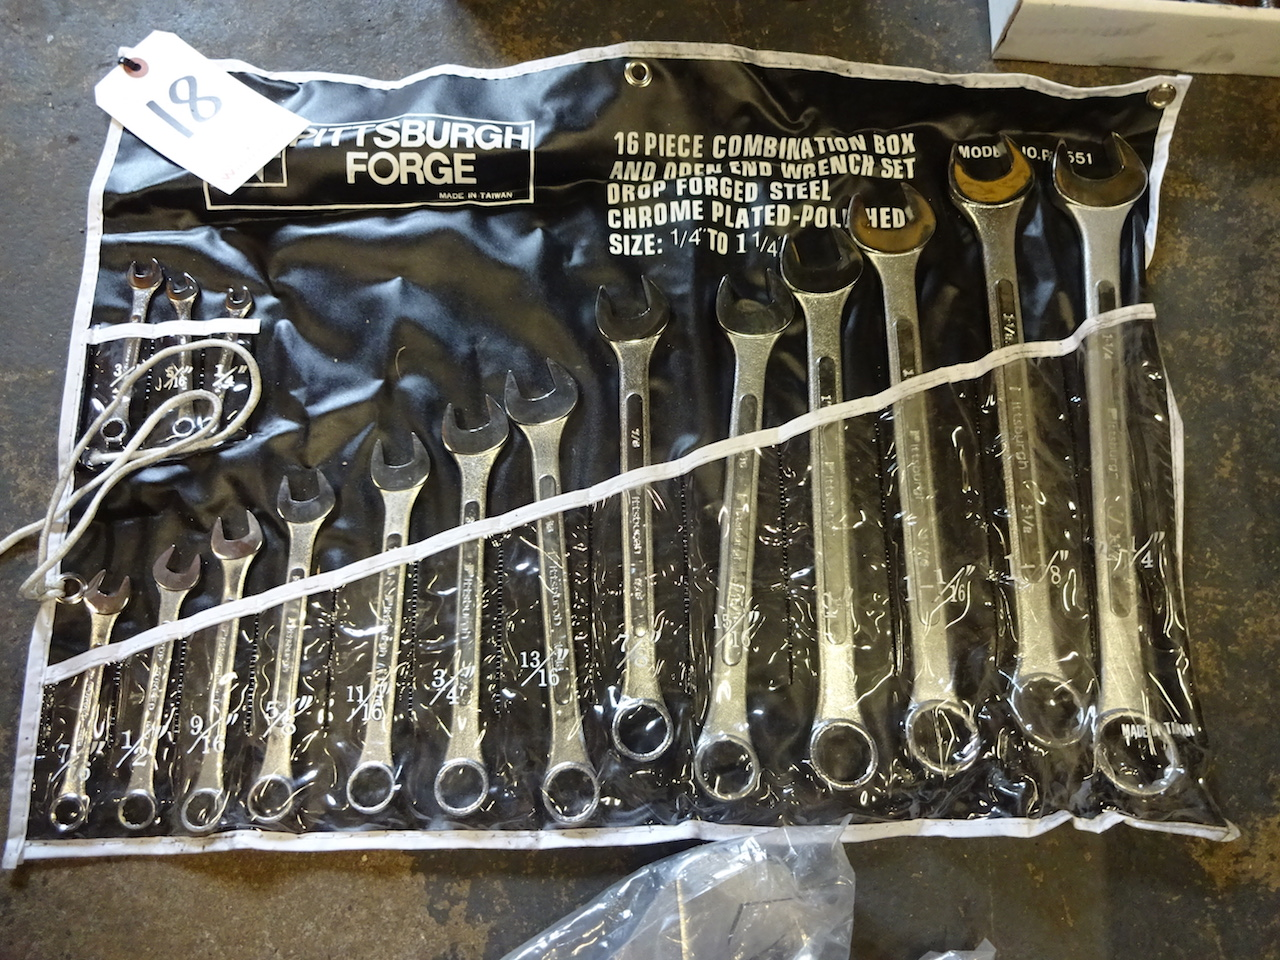 Lot 18 - Pittsburgh Forge 16-Piece Combination Box & Open End Wrench Set, 1/4 in. to 1-1/4 in.